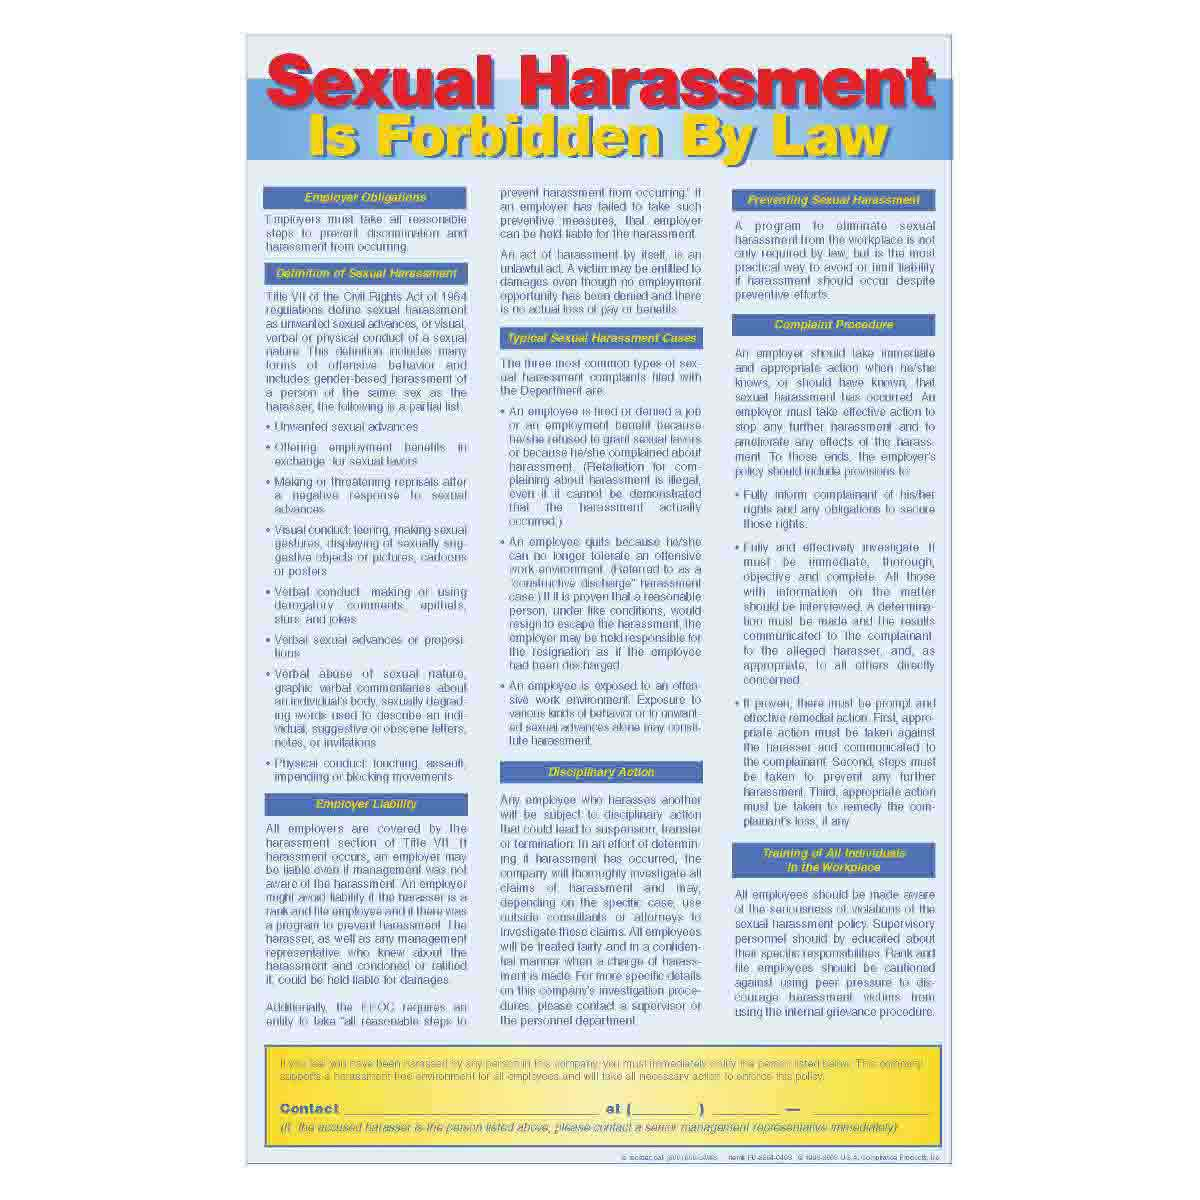 Osha sexual harassment poster laws